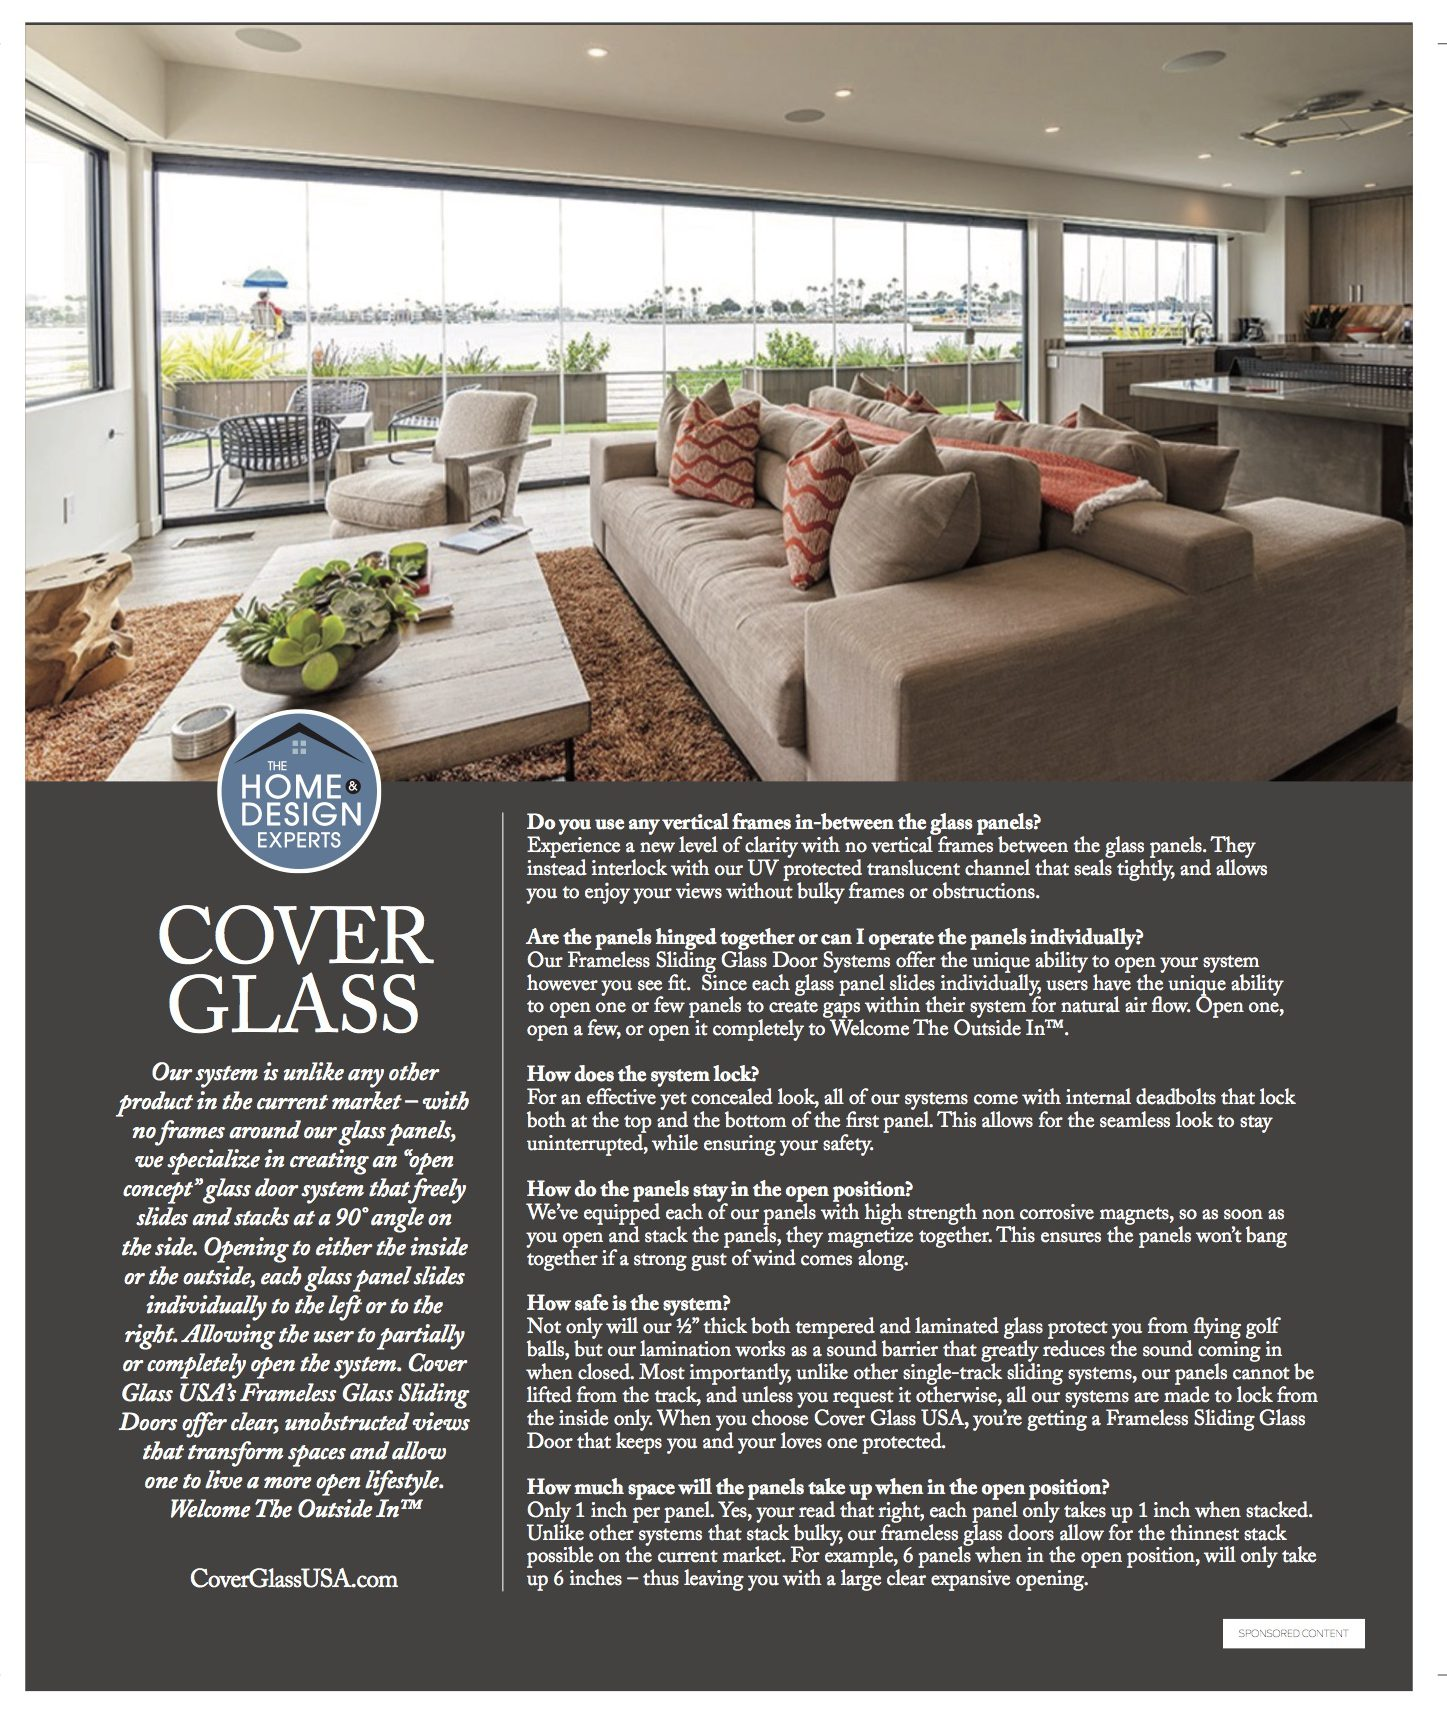 Cover Glass Sponsored Content